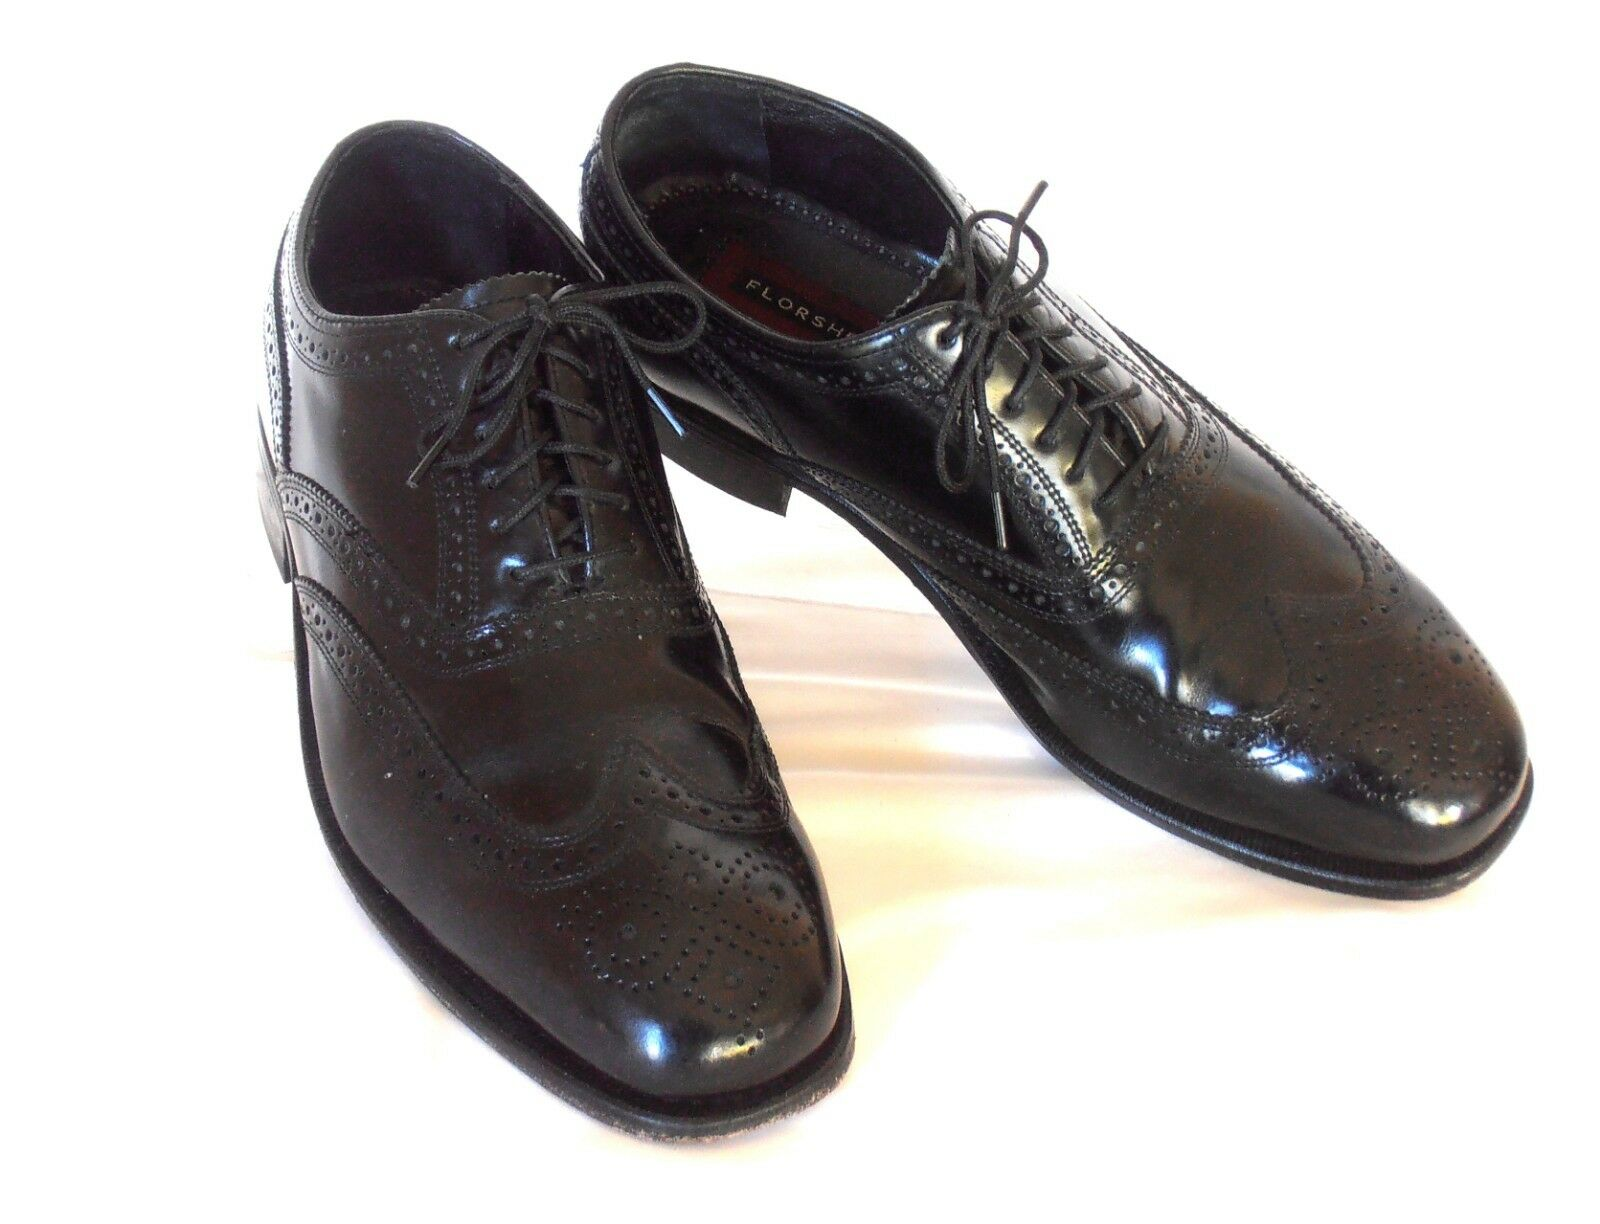 FLORSHEIM Size 8.5 Black Leather Full Brogue Wingtip Leather Soled Dress Oxfords